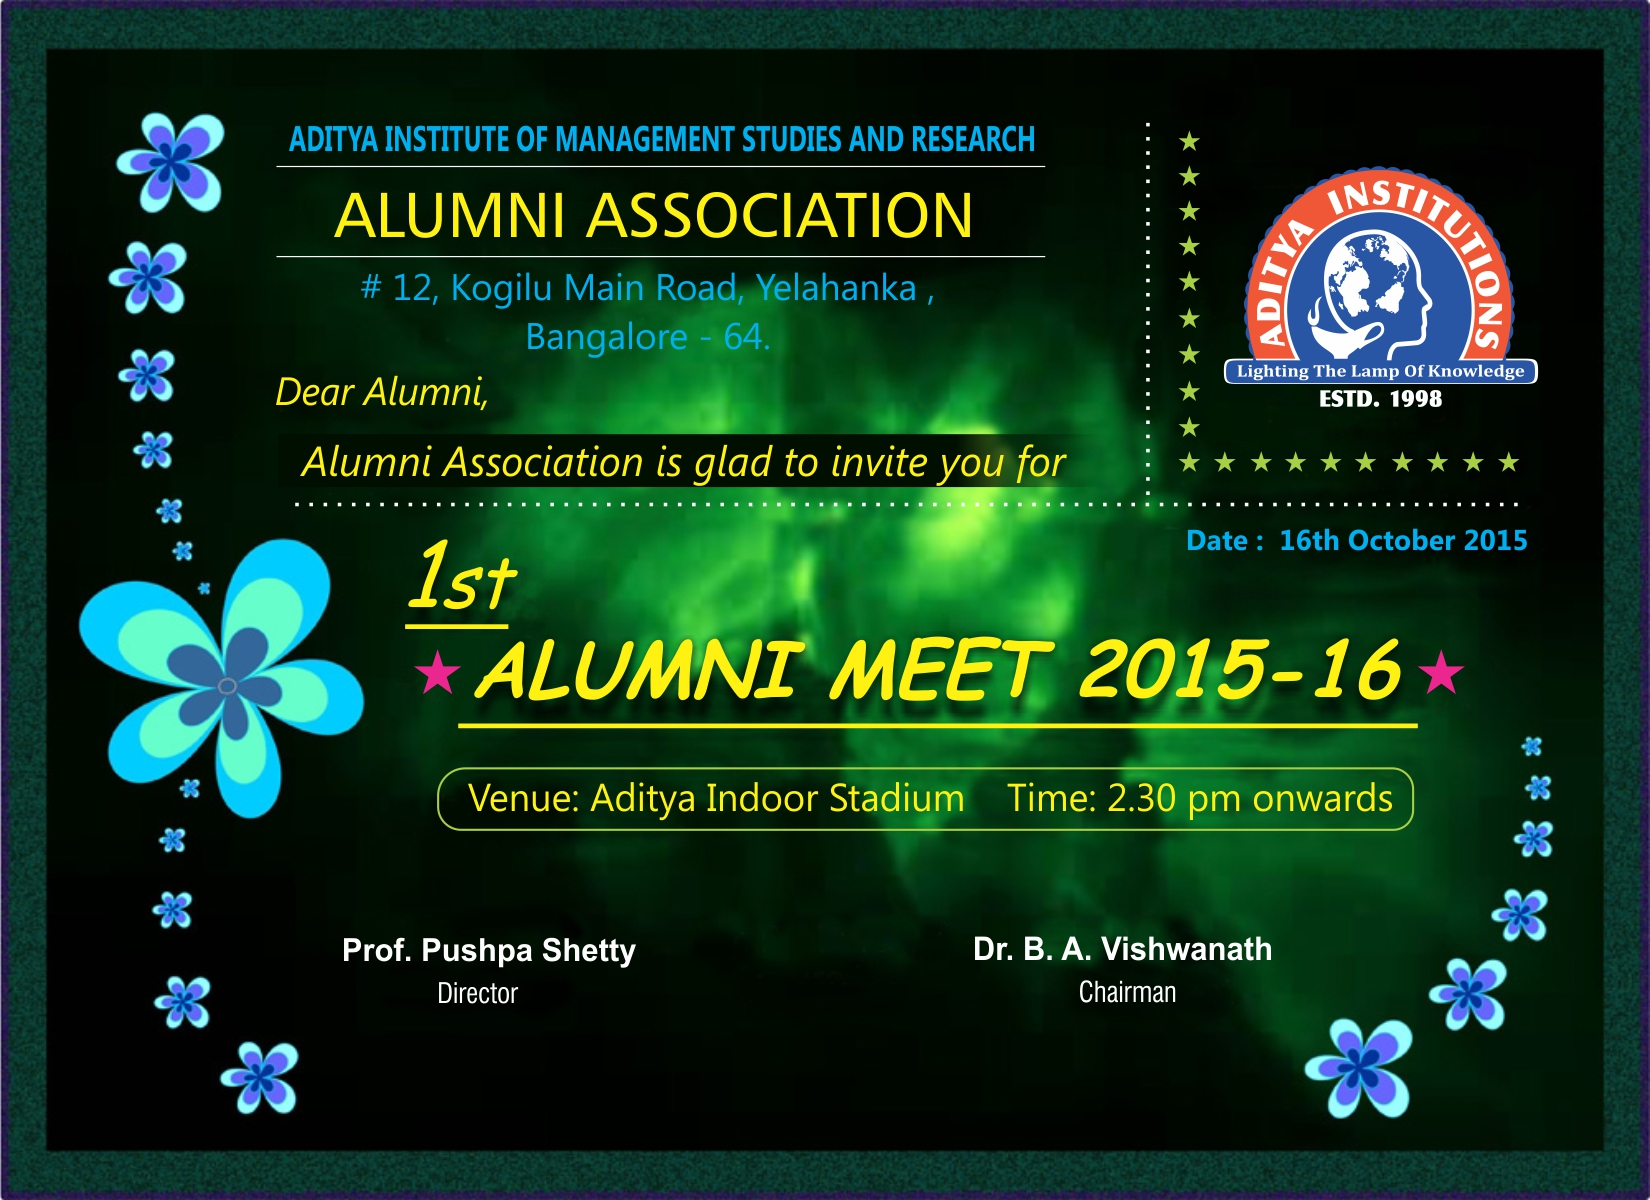 Alumni meet 2015-2016 invitation